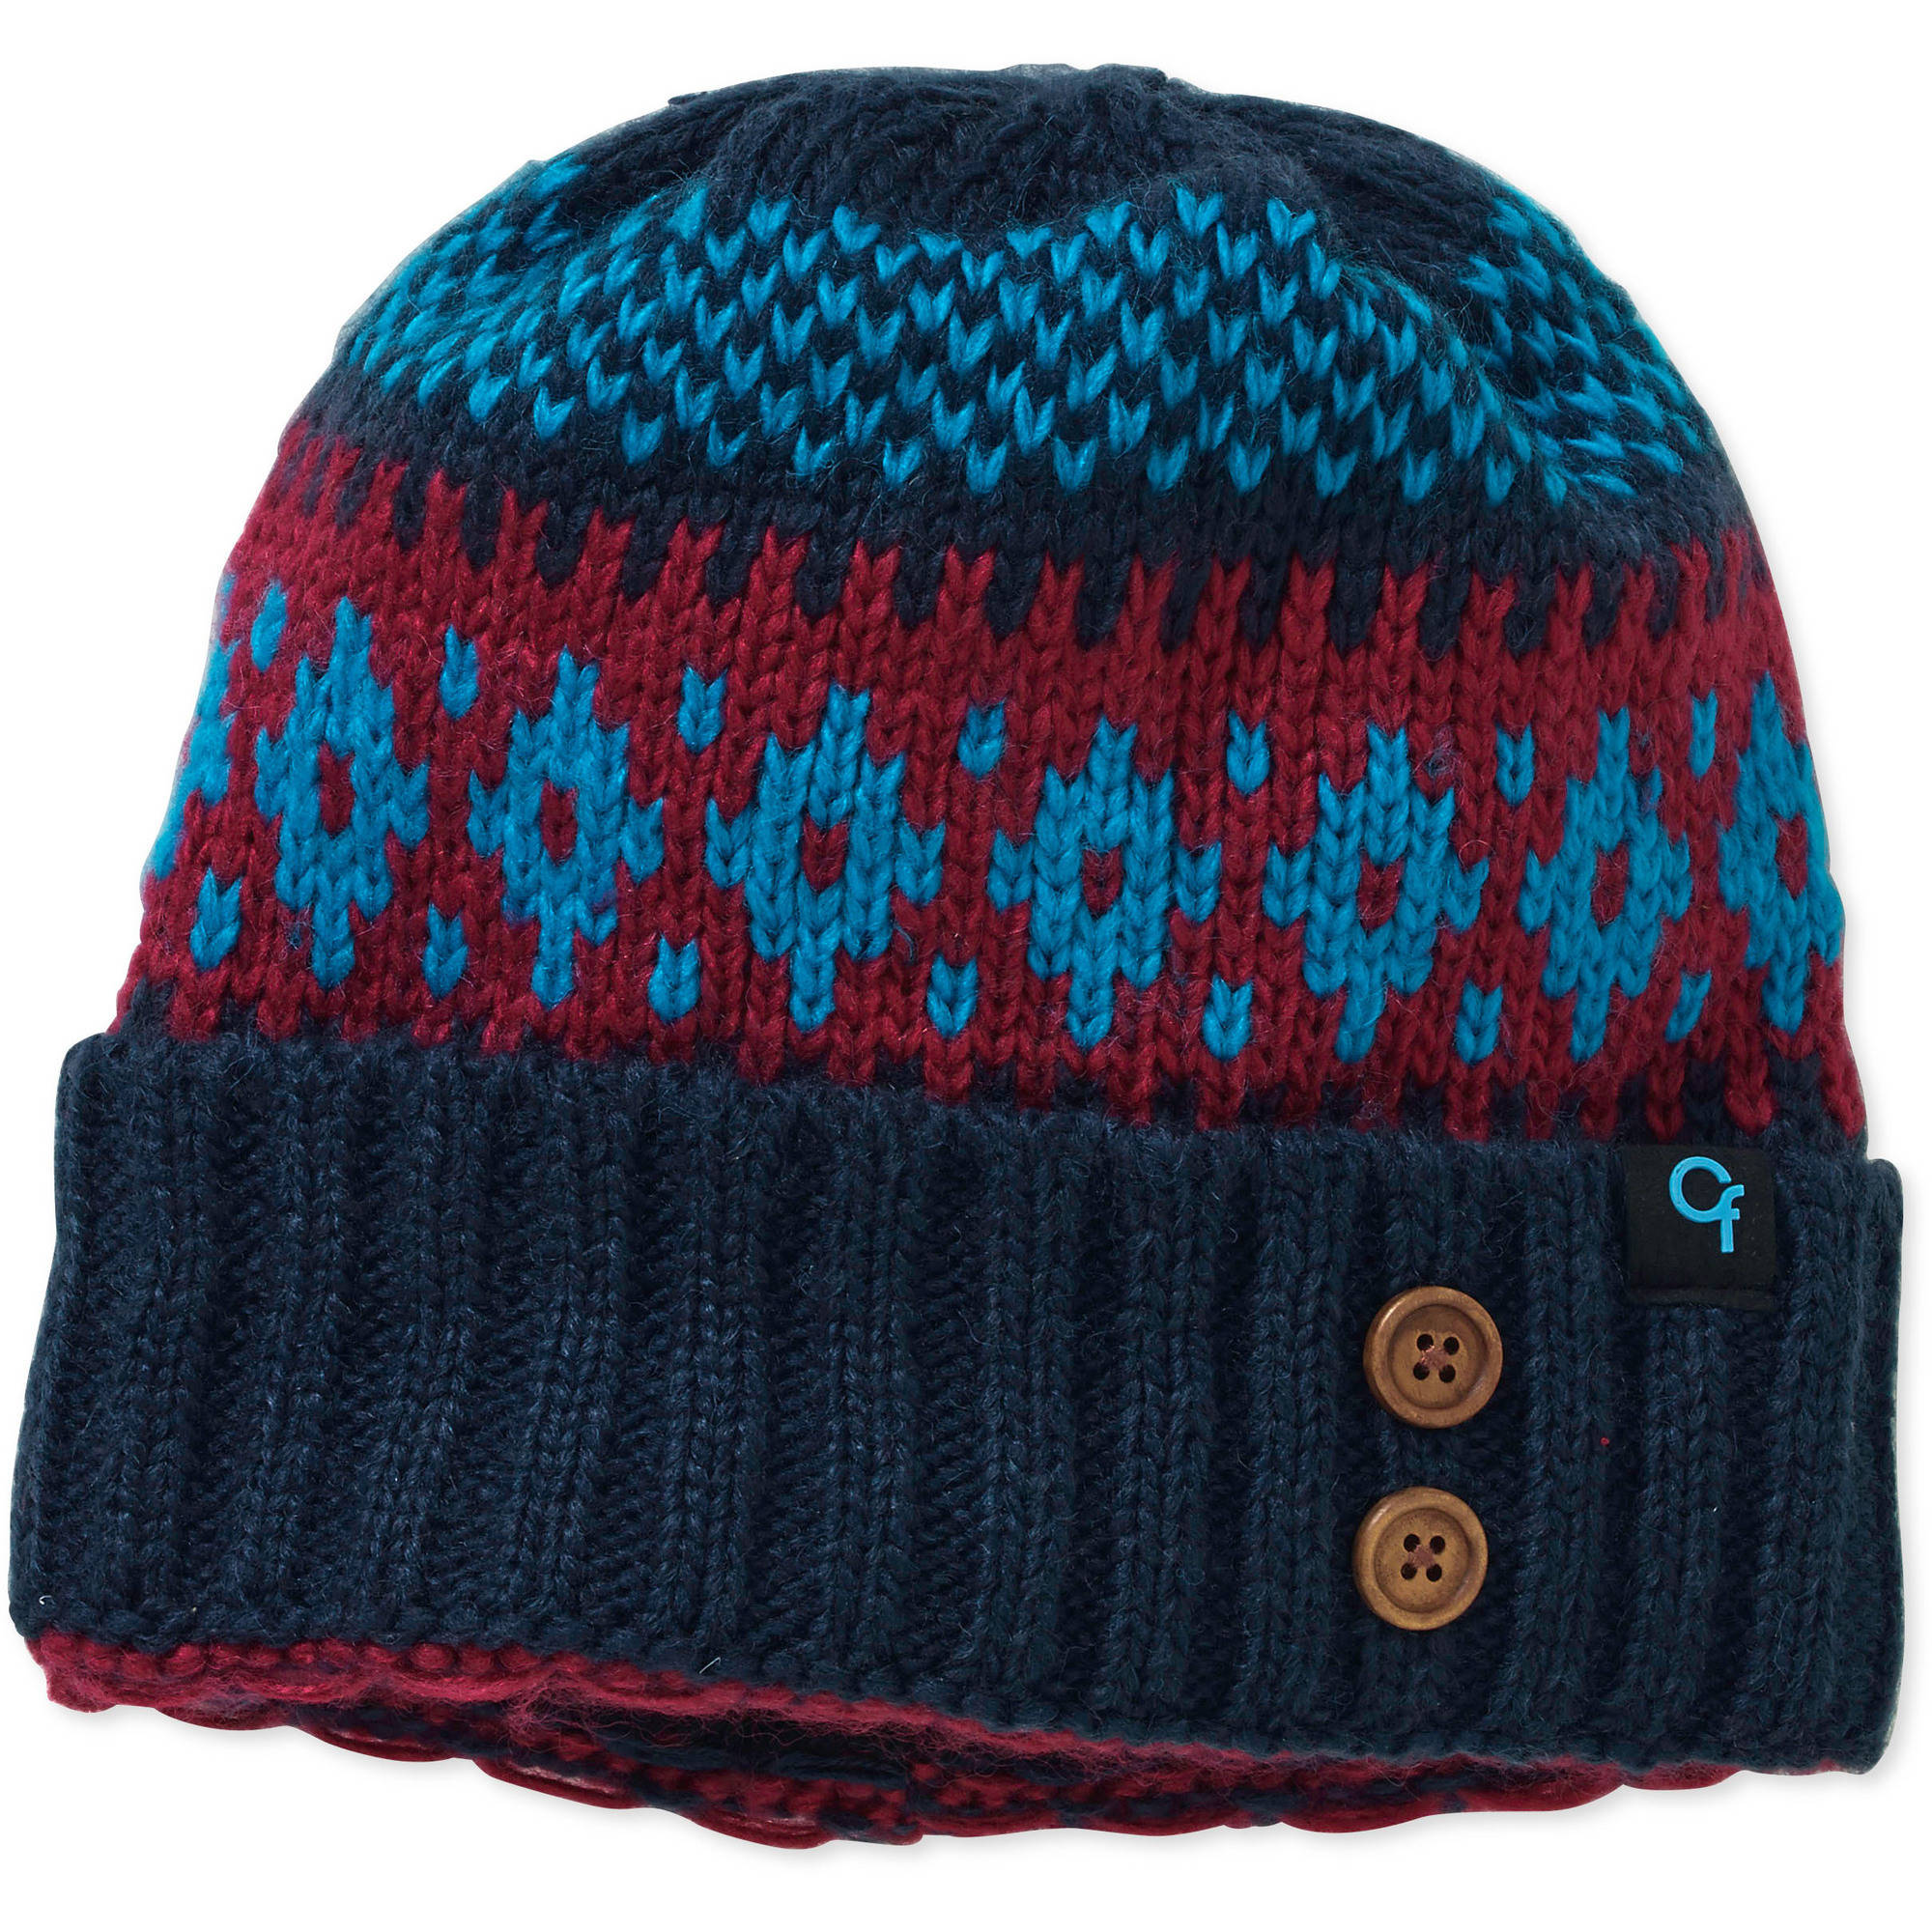 Women's Patterned Cuff Fleece Lined Knit Beanie Hat